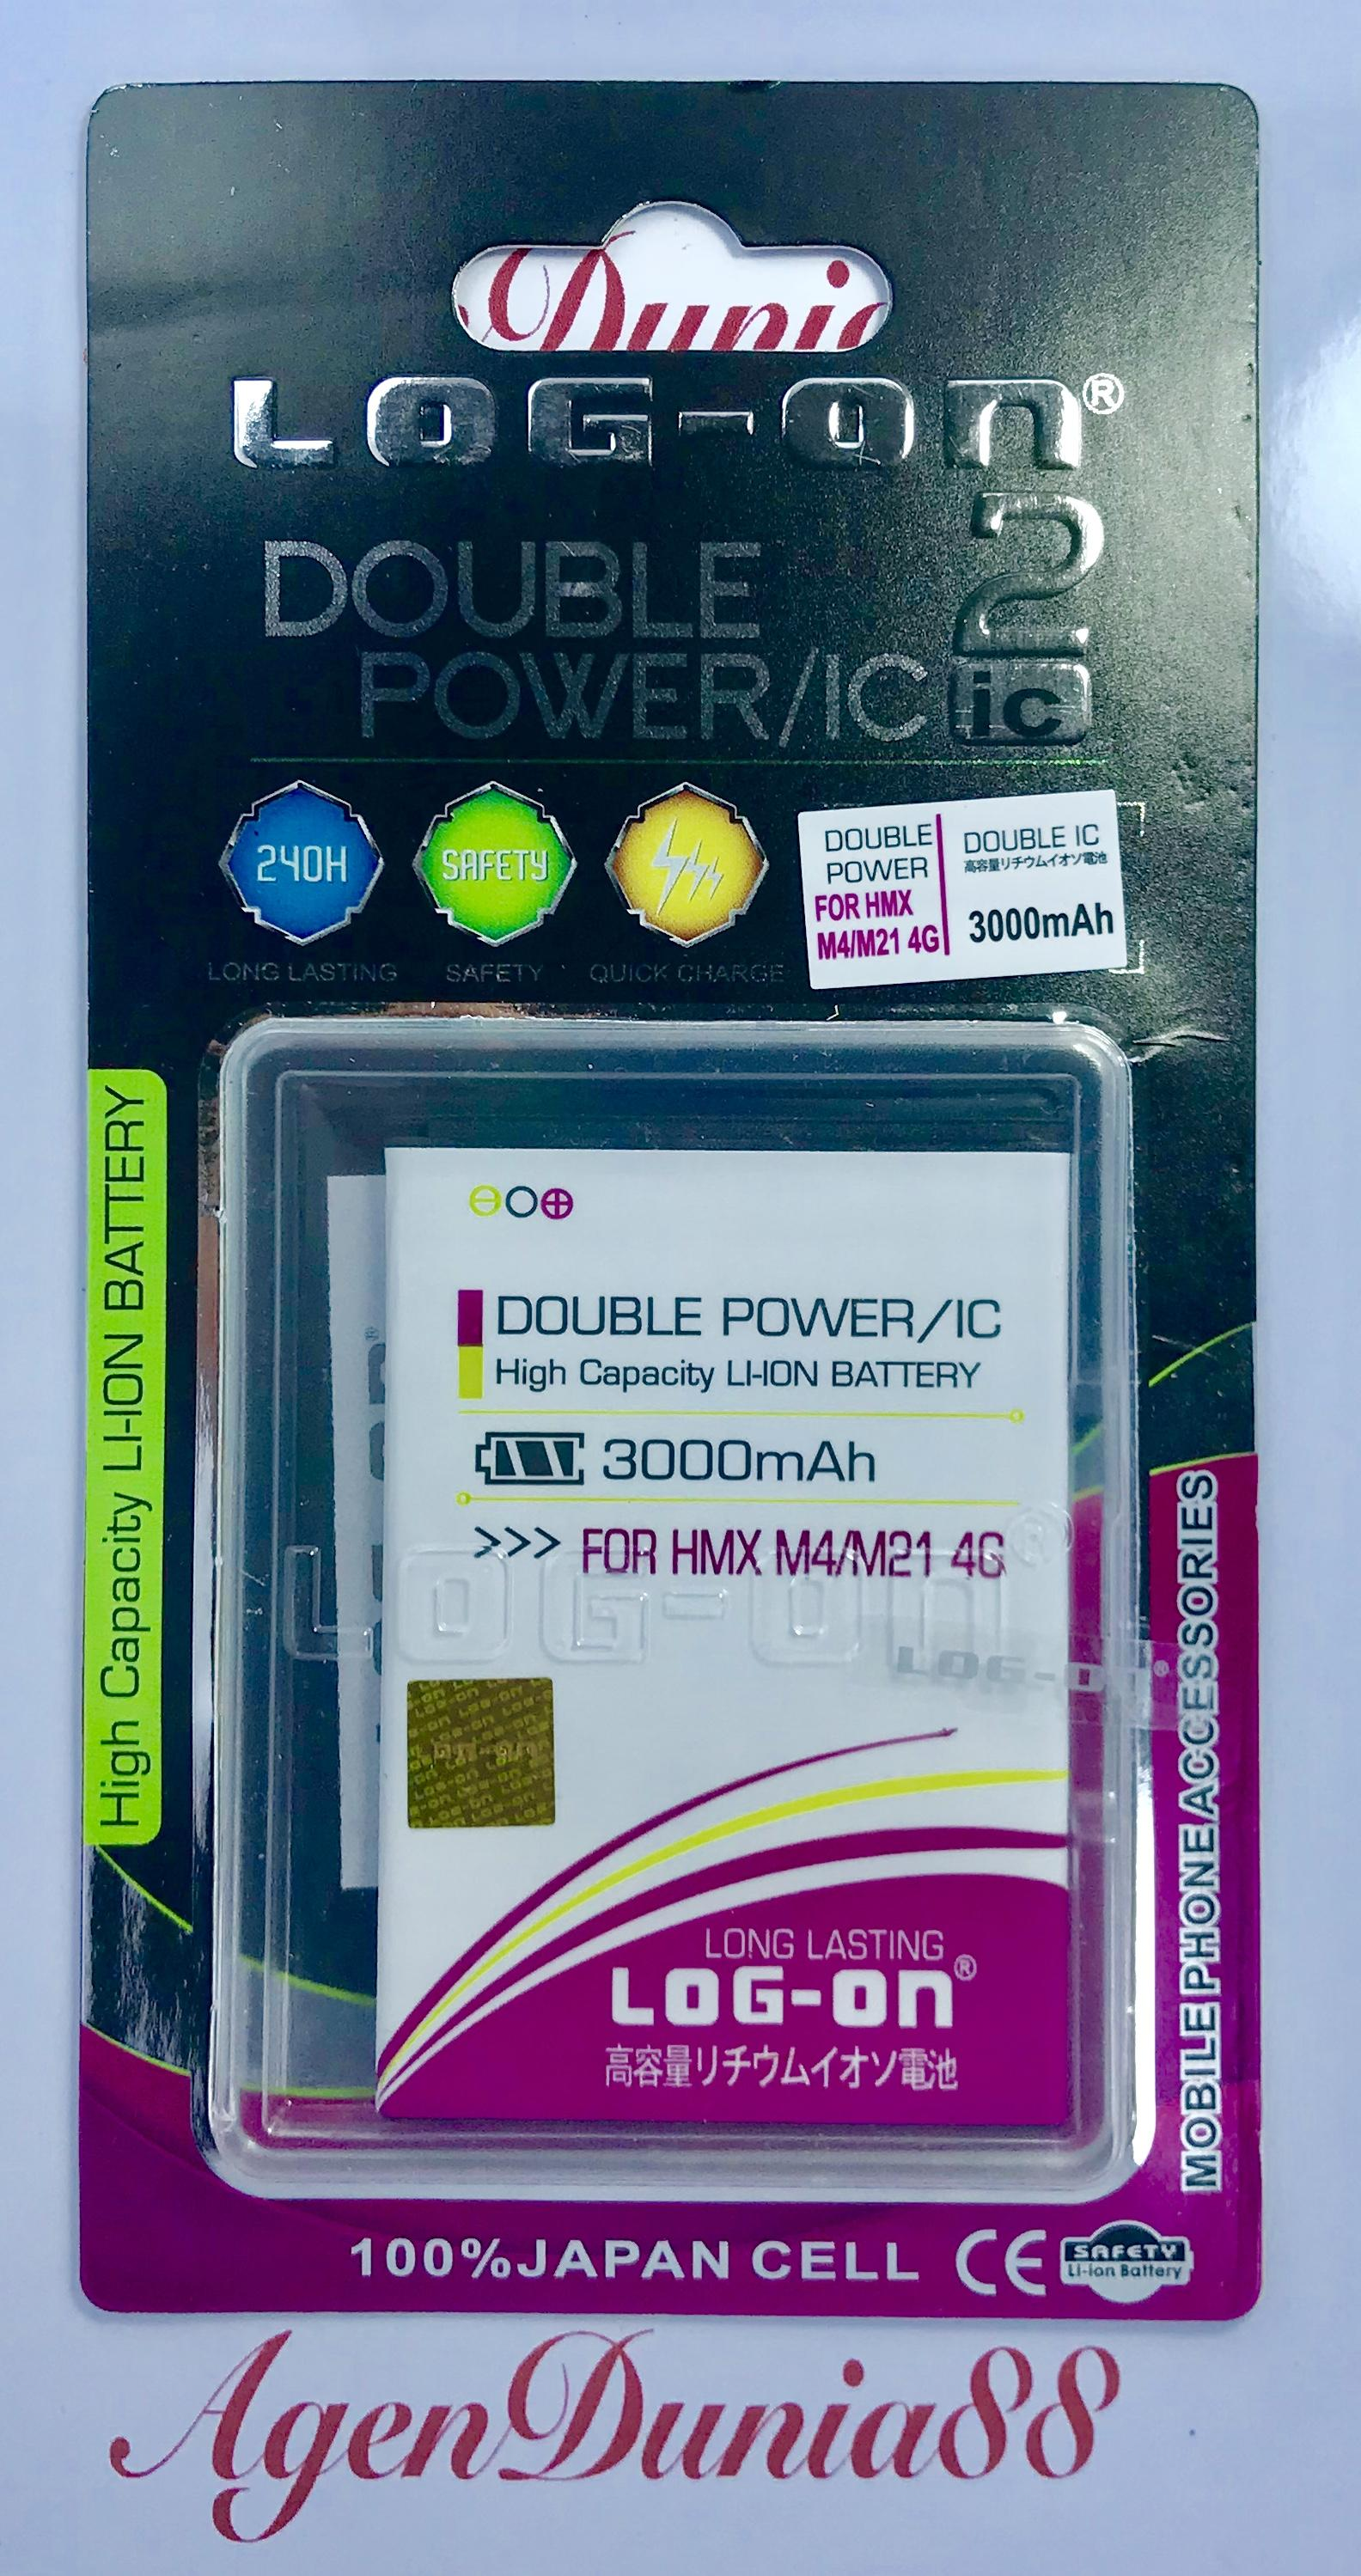 BATERAI HIMAX M4 - M21 4G - KBL200N378 - LOG ON DOUBLE POWER BATTERY